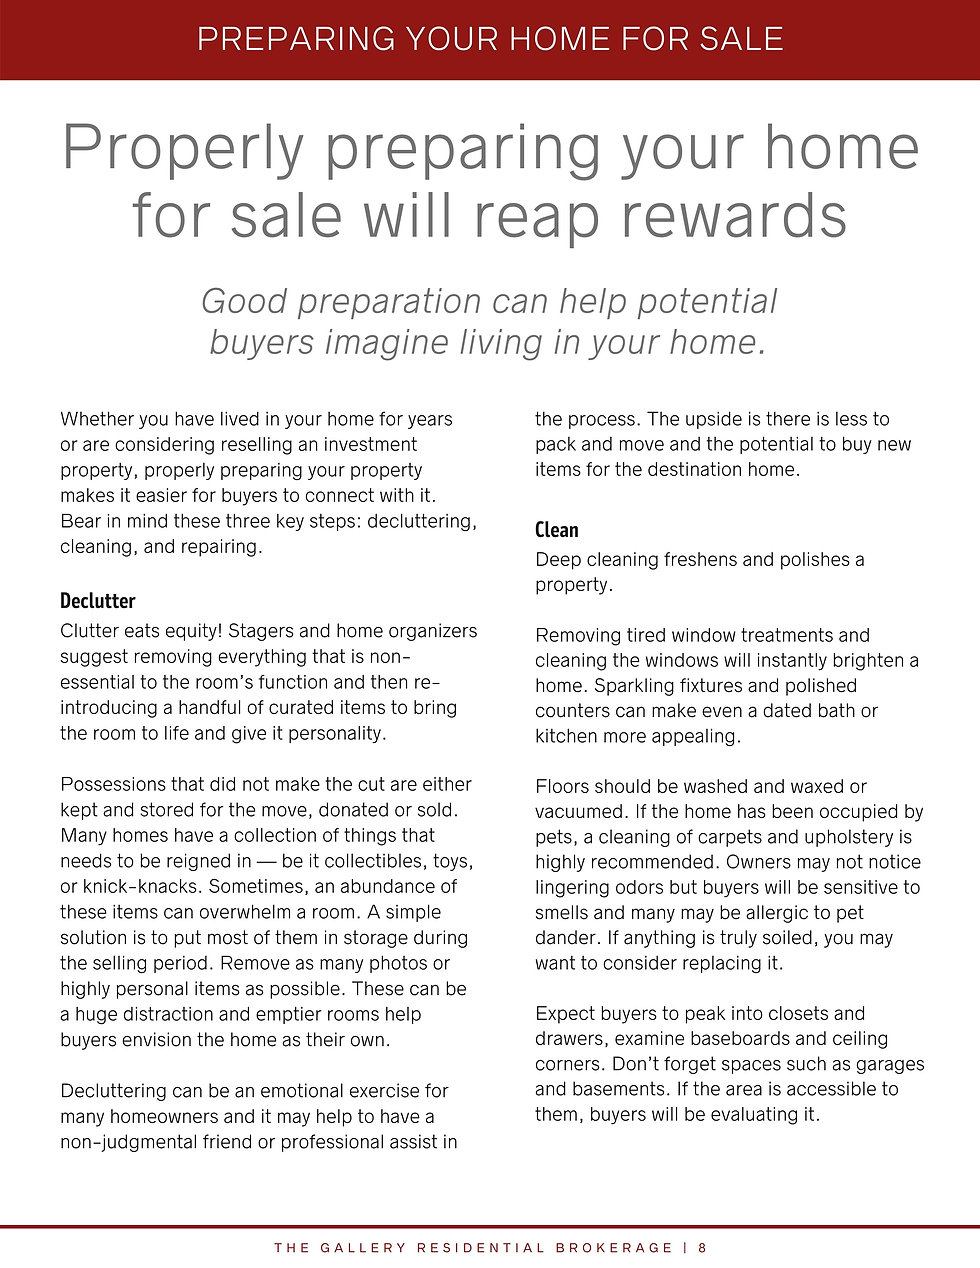 Preparing your Home For Sale will Reap Rewards